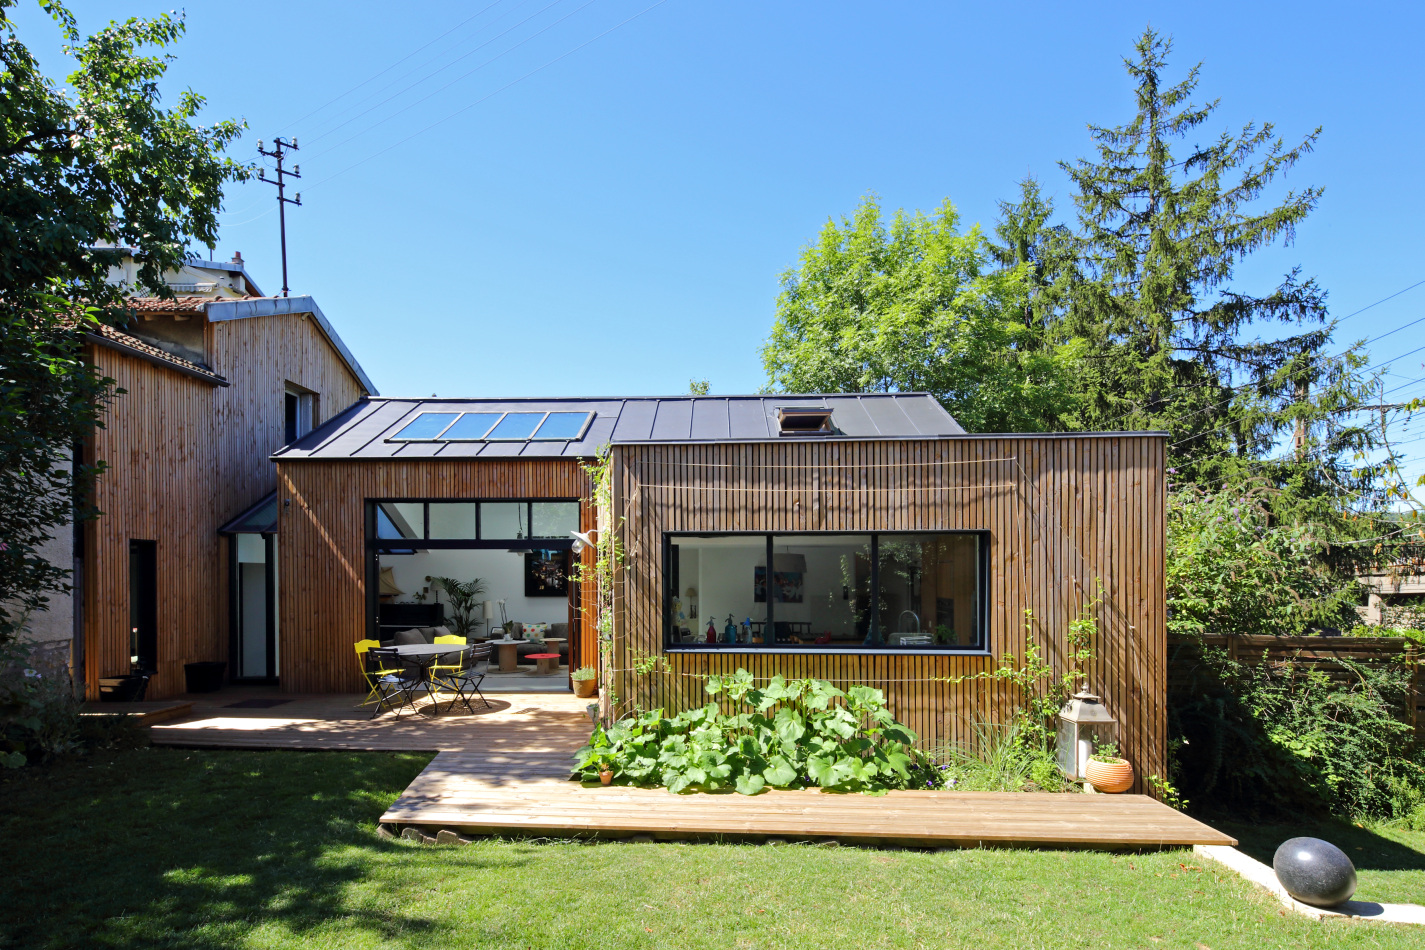 Extension en bois bbc s vres 2013 t design architecture for Maison et architecture